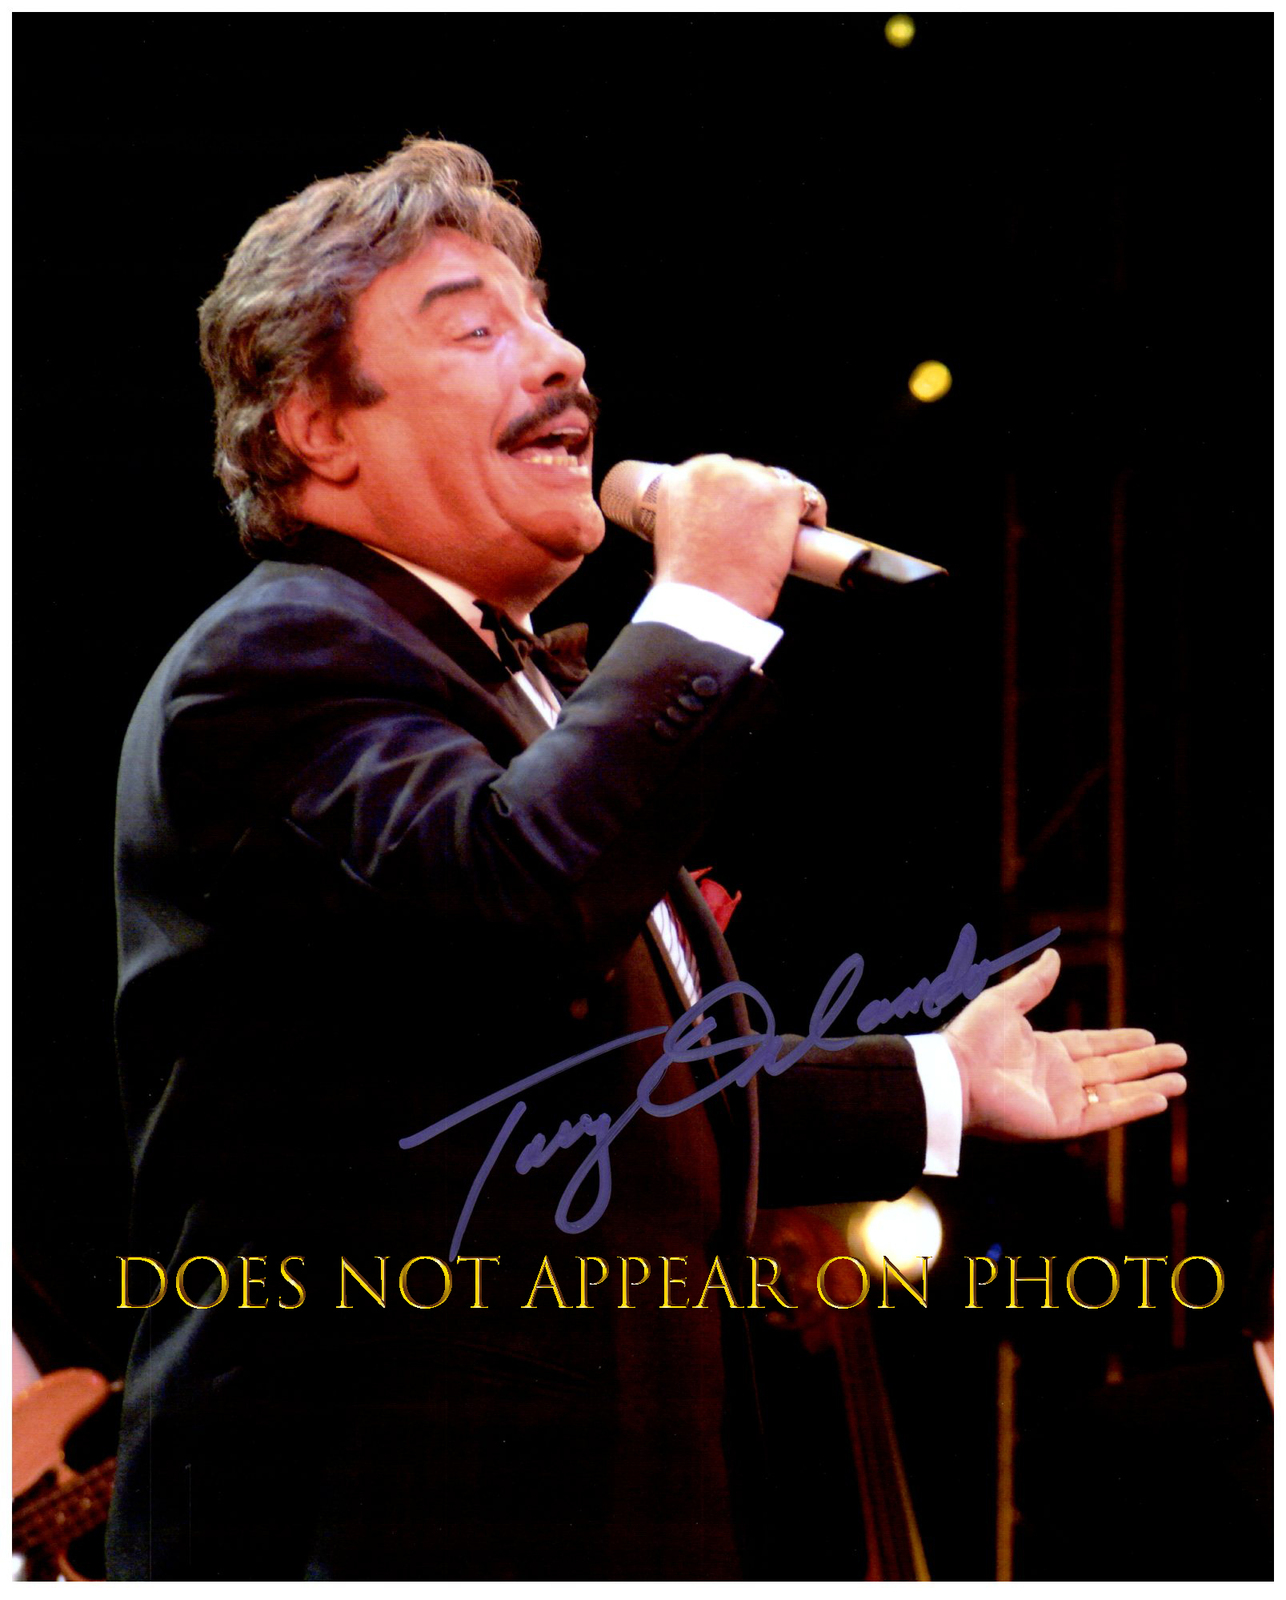 Primary image for TONY ORLANDO Signed Autographed 8X10 Photo w/ Certificate of Authenticity 333